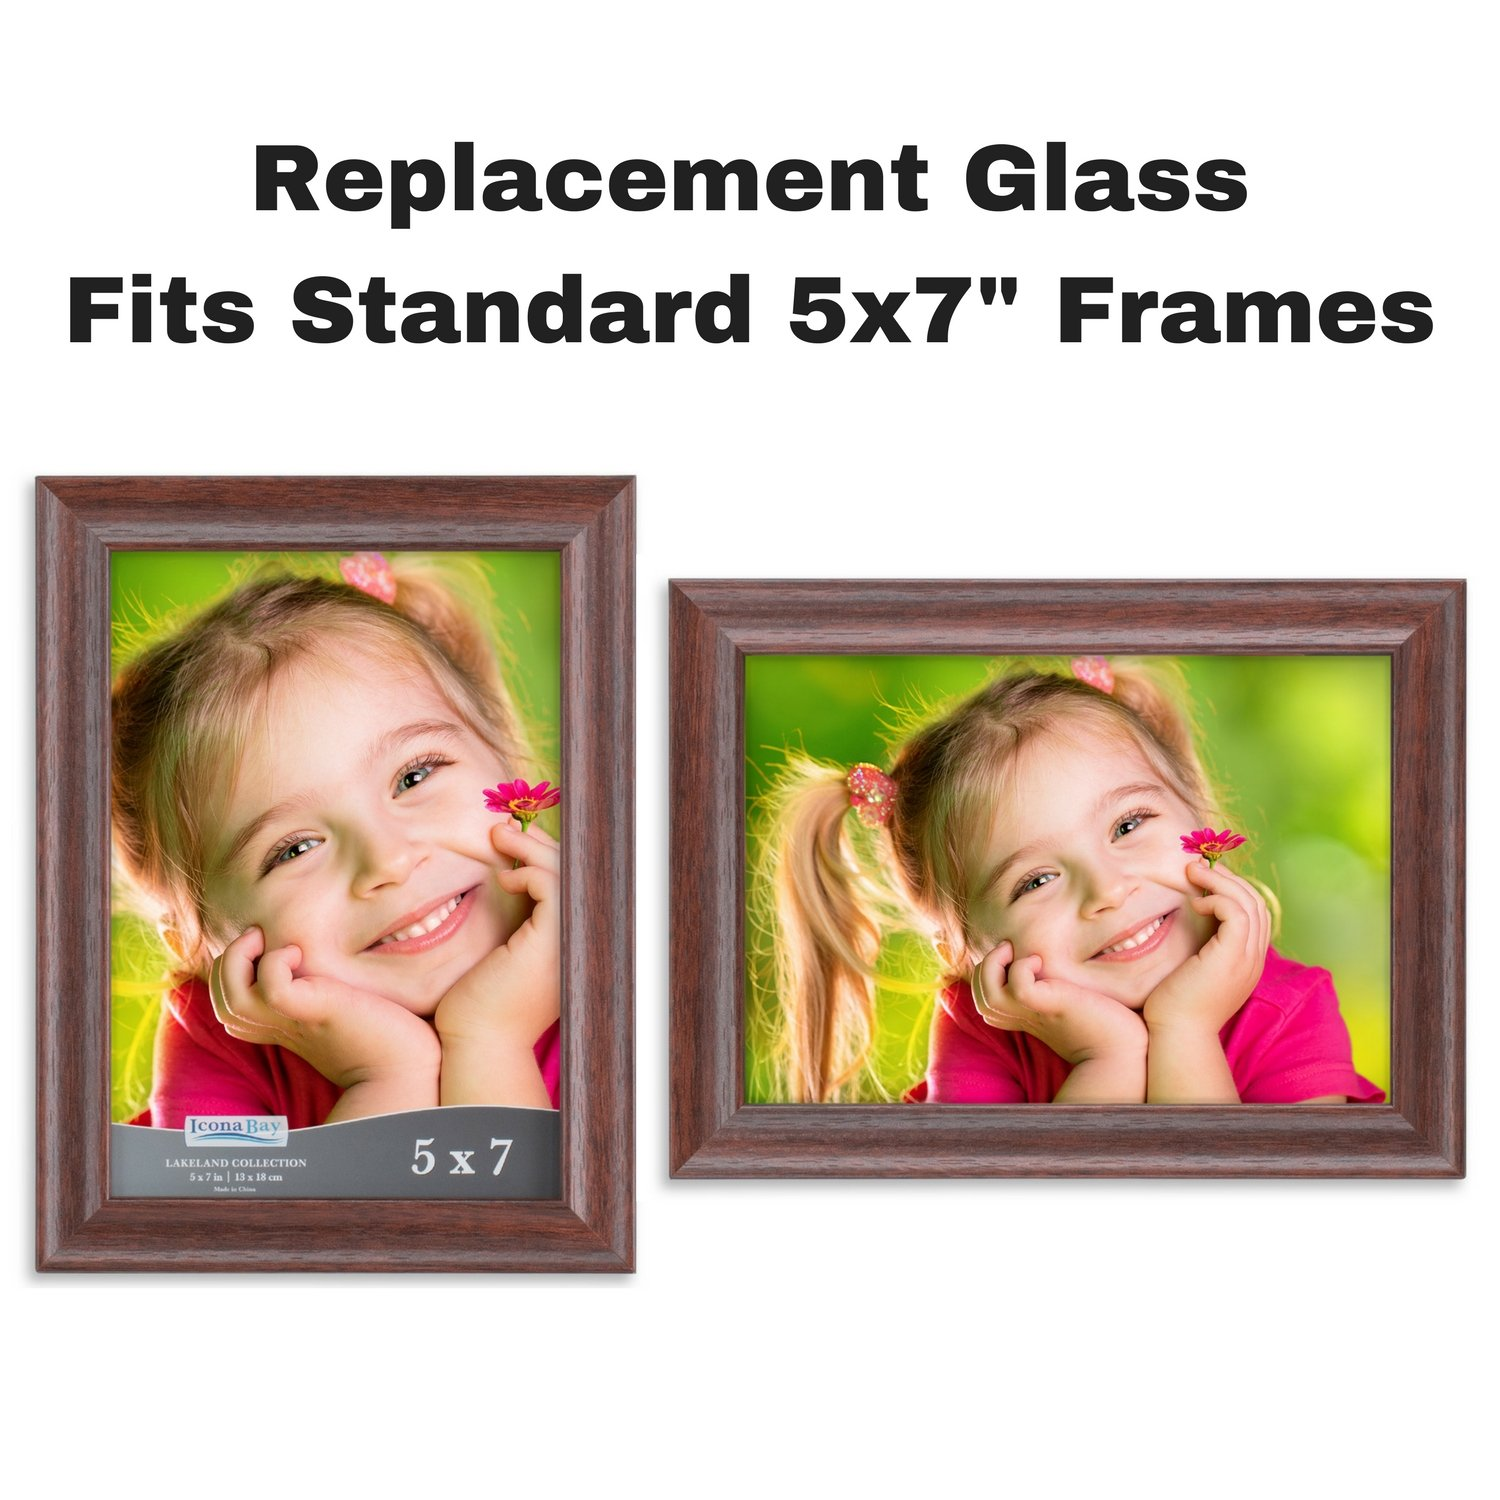 Icona Bay 5x7 Picture Frame Glass Replacement 5 X 7 2 Pack Replacement Glass For 5 By 7 Photo Frame Real Glass Cover